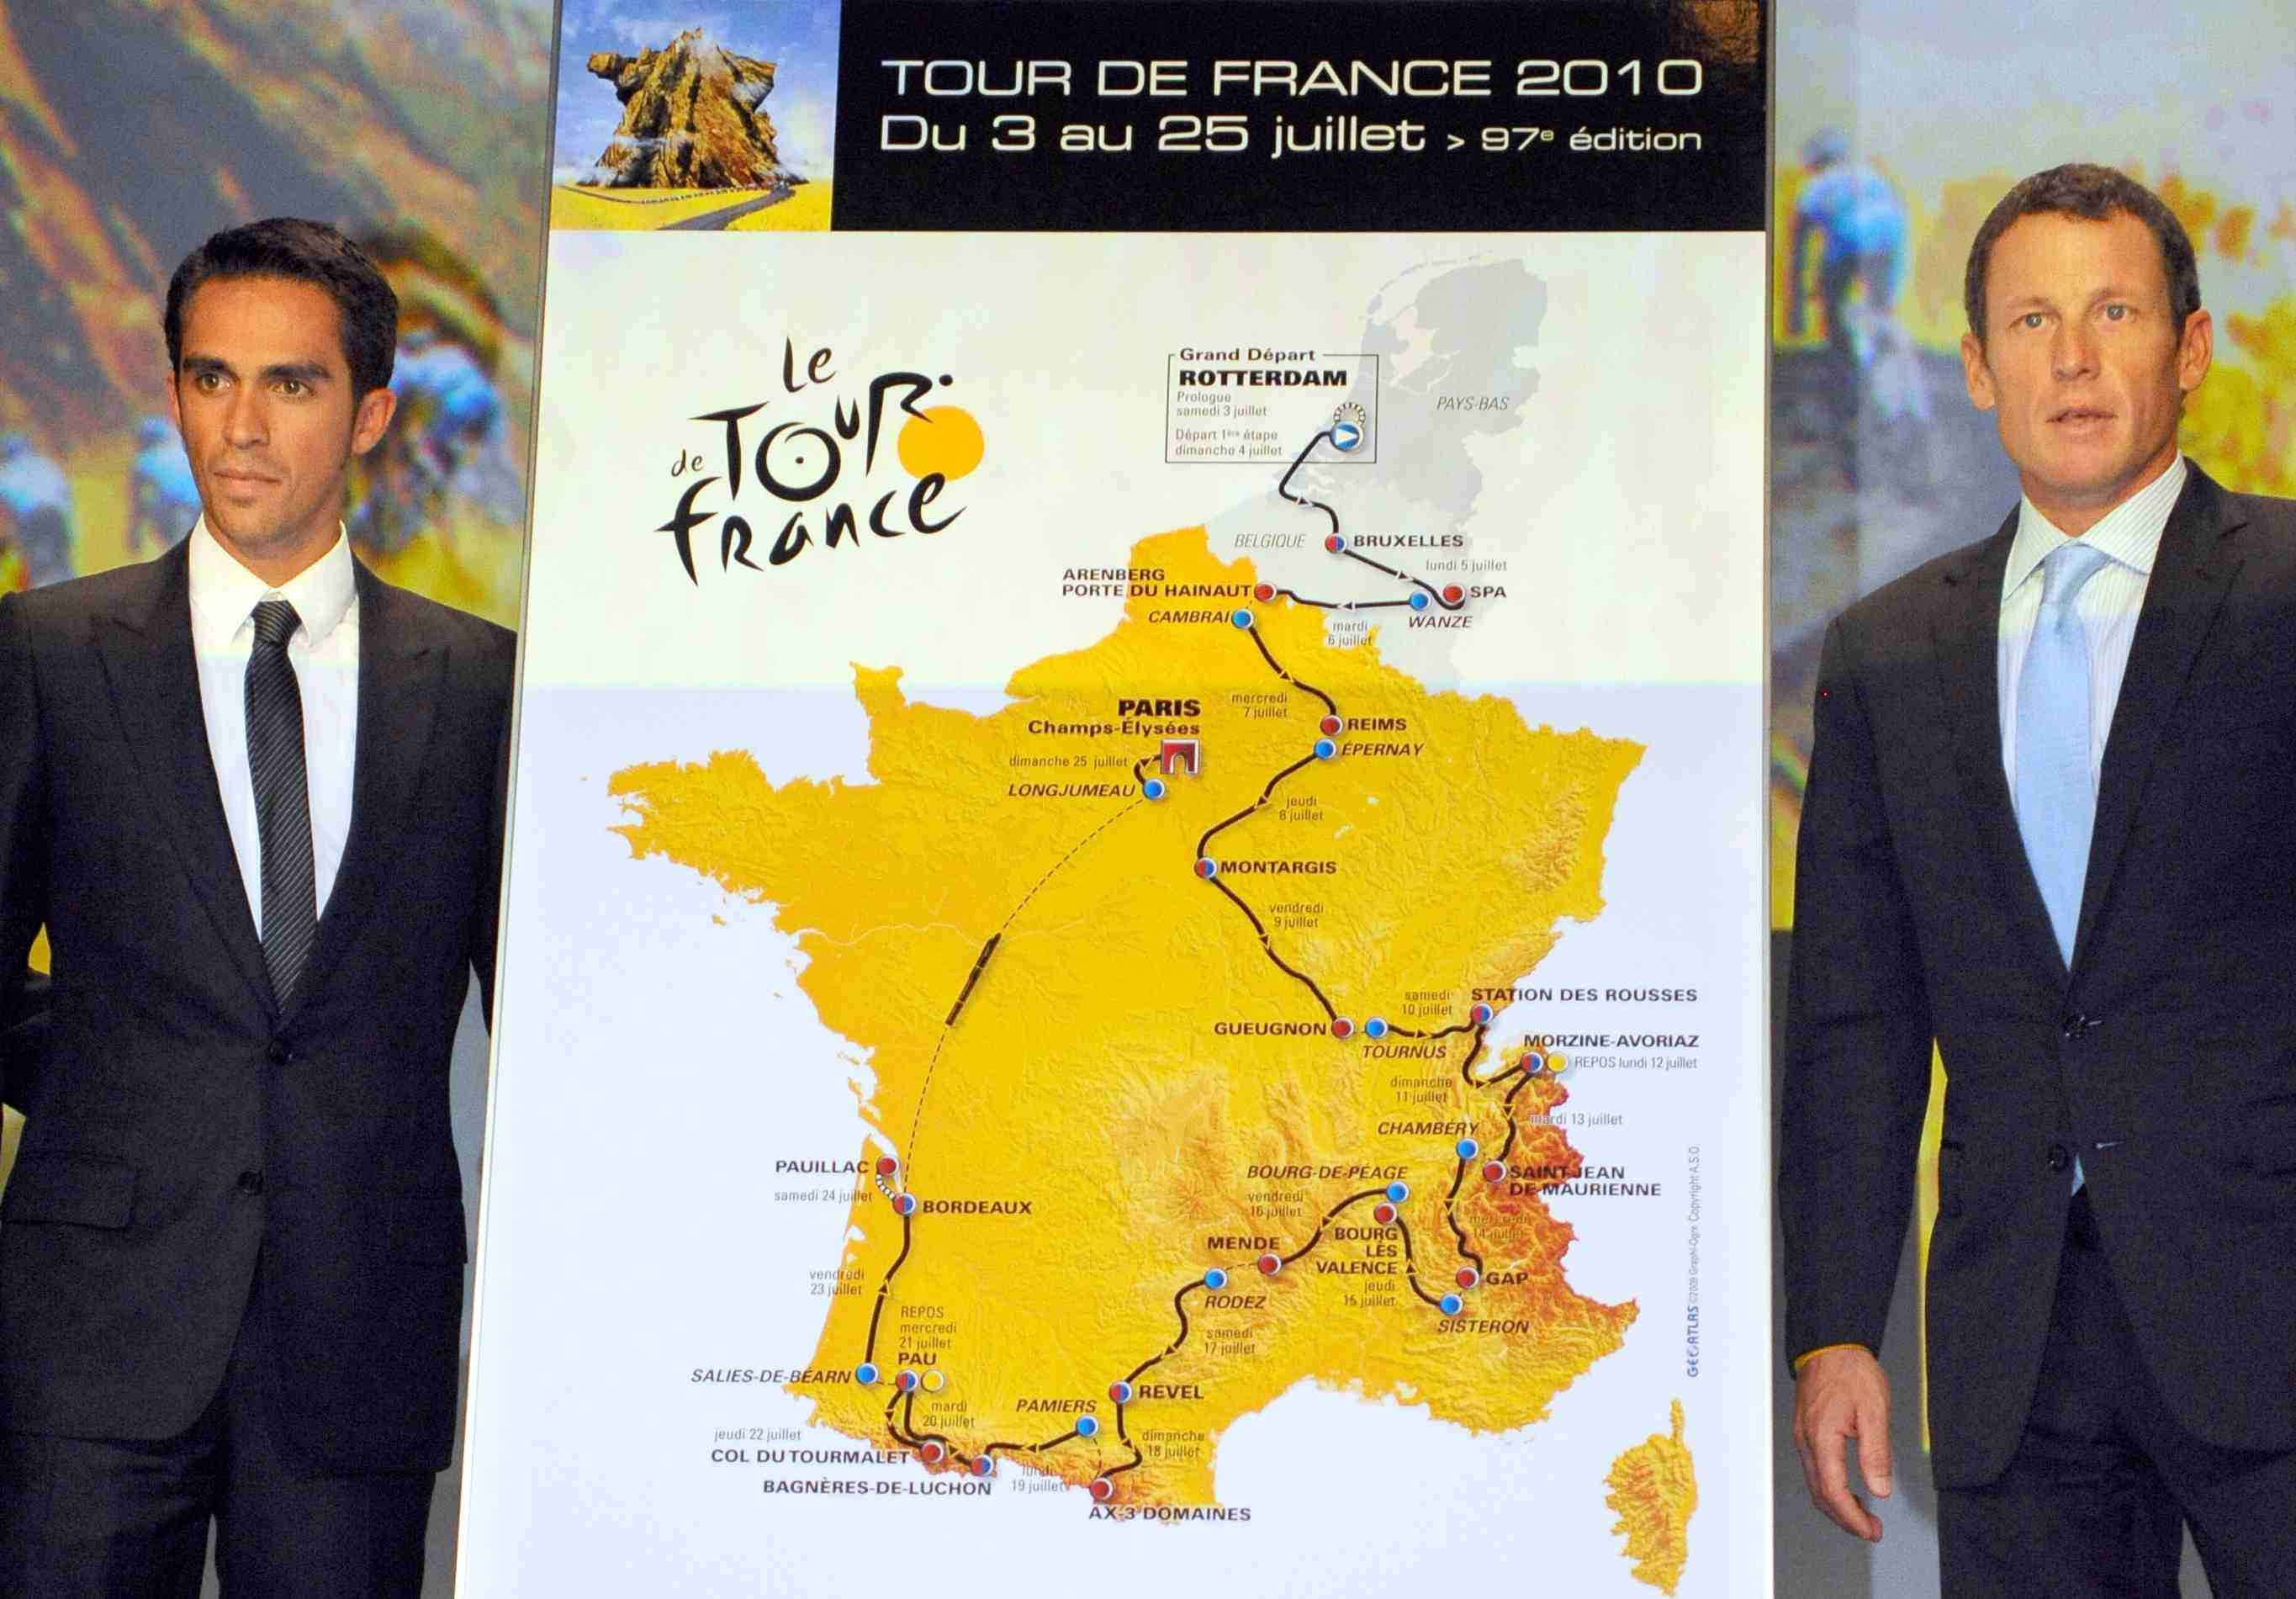 Former Astana teammates Alberto Contador and Lance Armstrong appear at the 2010 Tour de France route announcement in Paris on October 14, 2009.